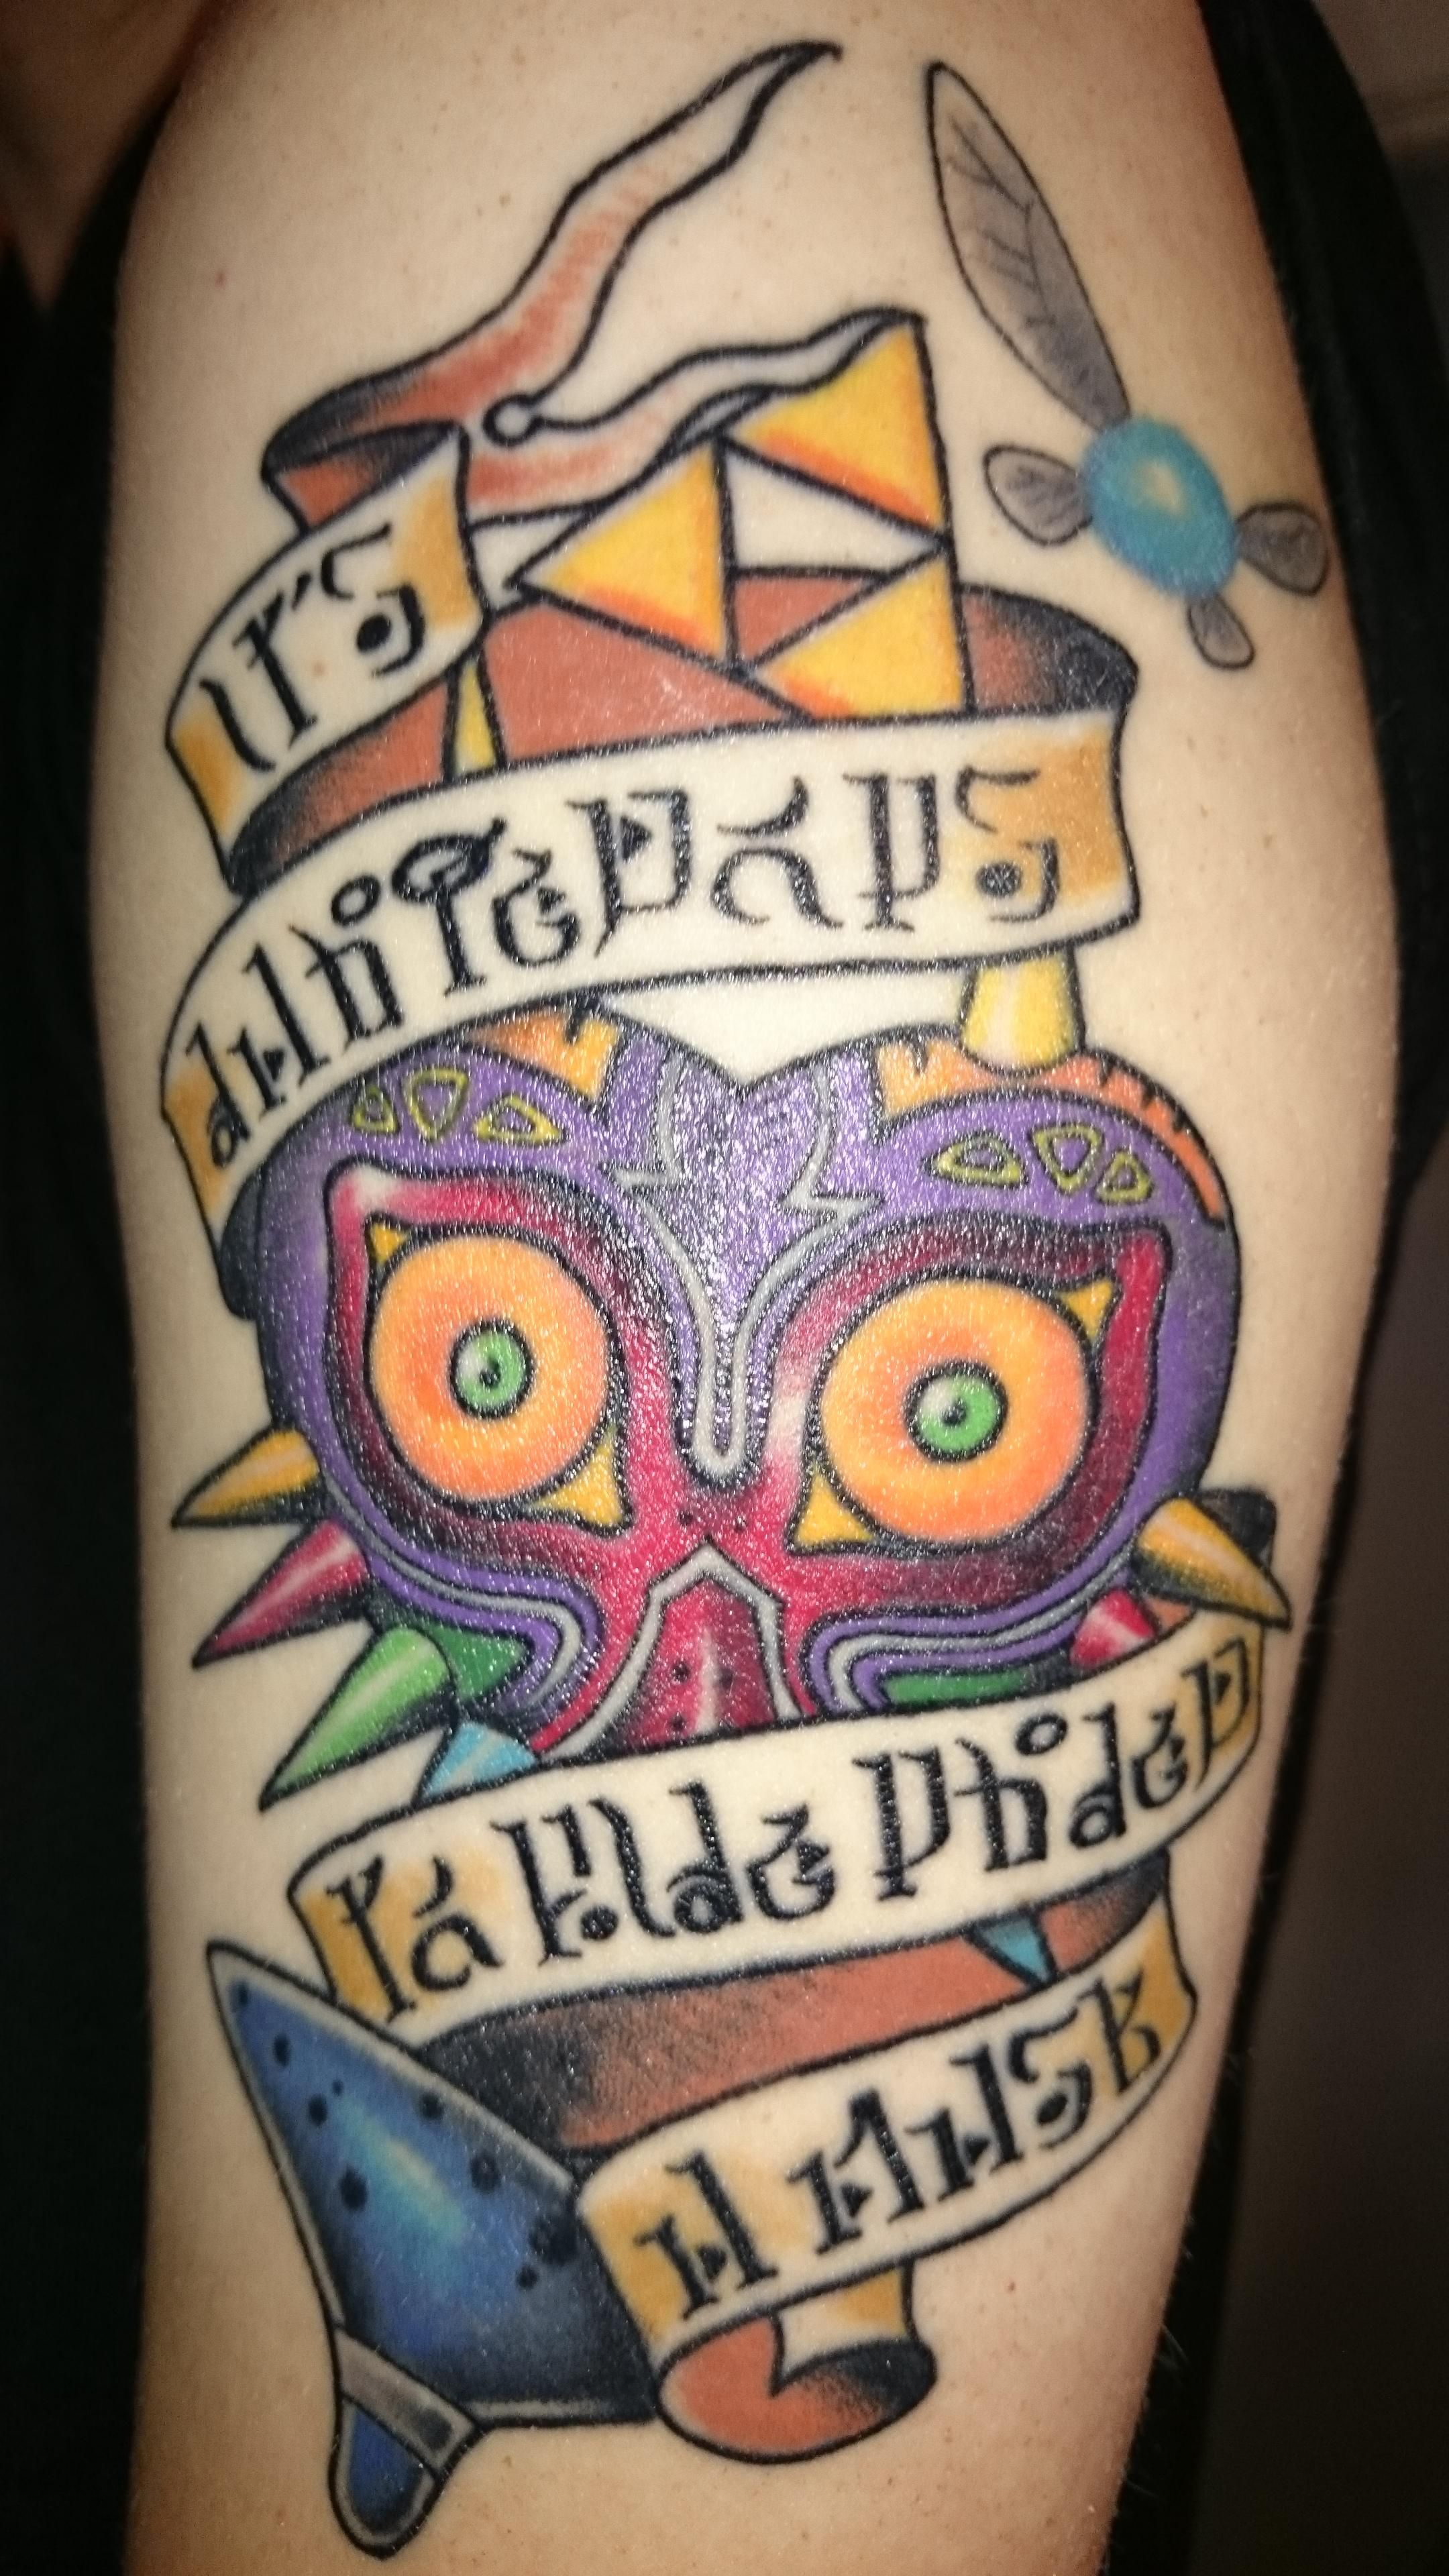 7153eef0e8dc9 My new Zelda Tattoo, done by Ben Jenkins from The Tattooed Heart in  Auckland, New Zealand